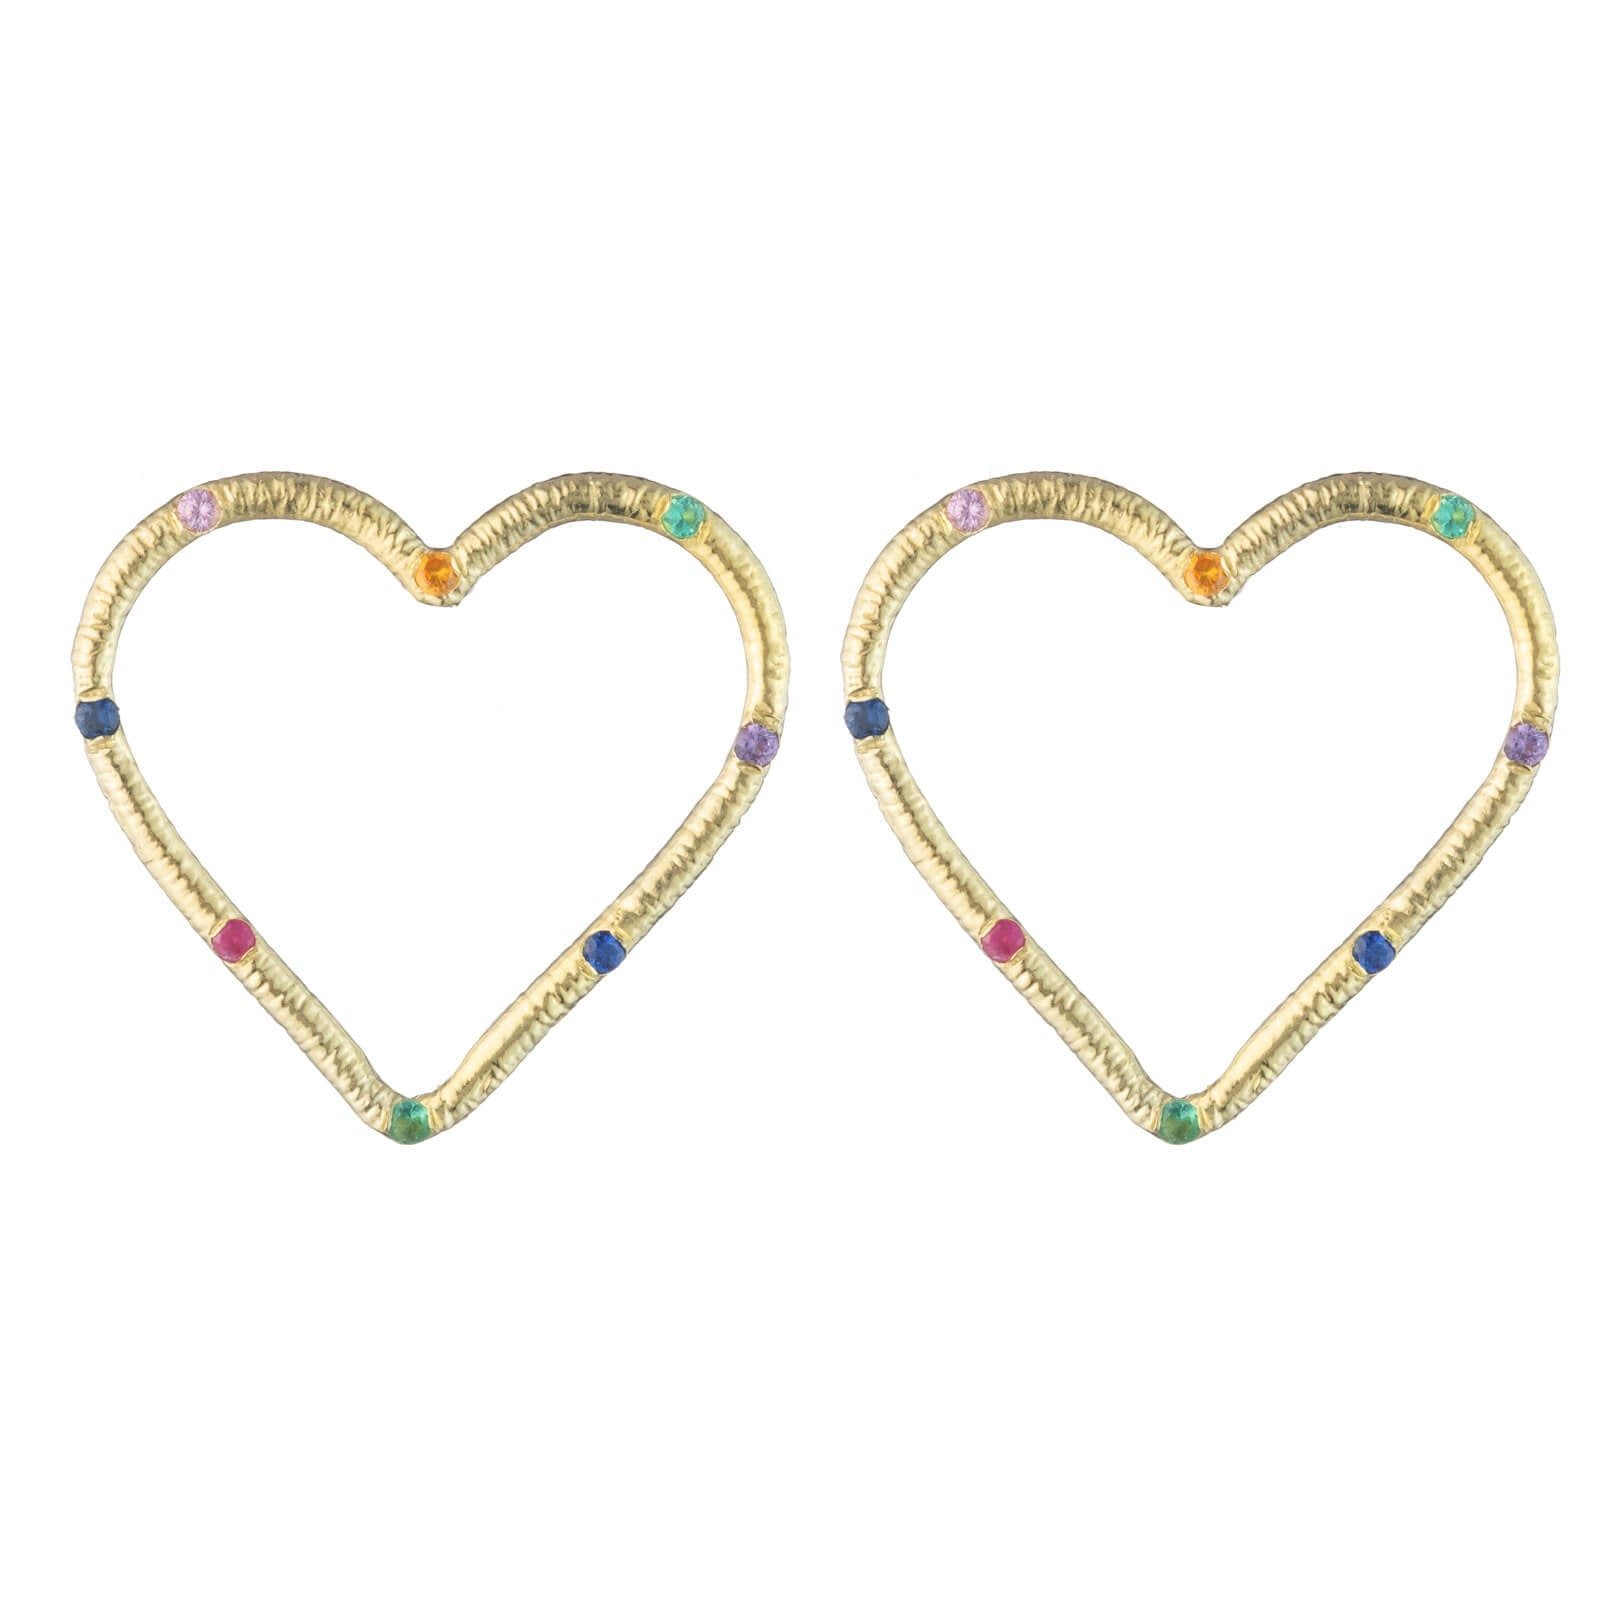 Large Textured Heart Stud Earrings with Precious Gemstones